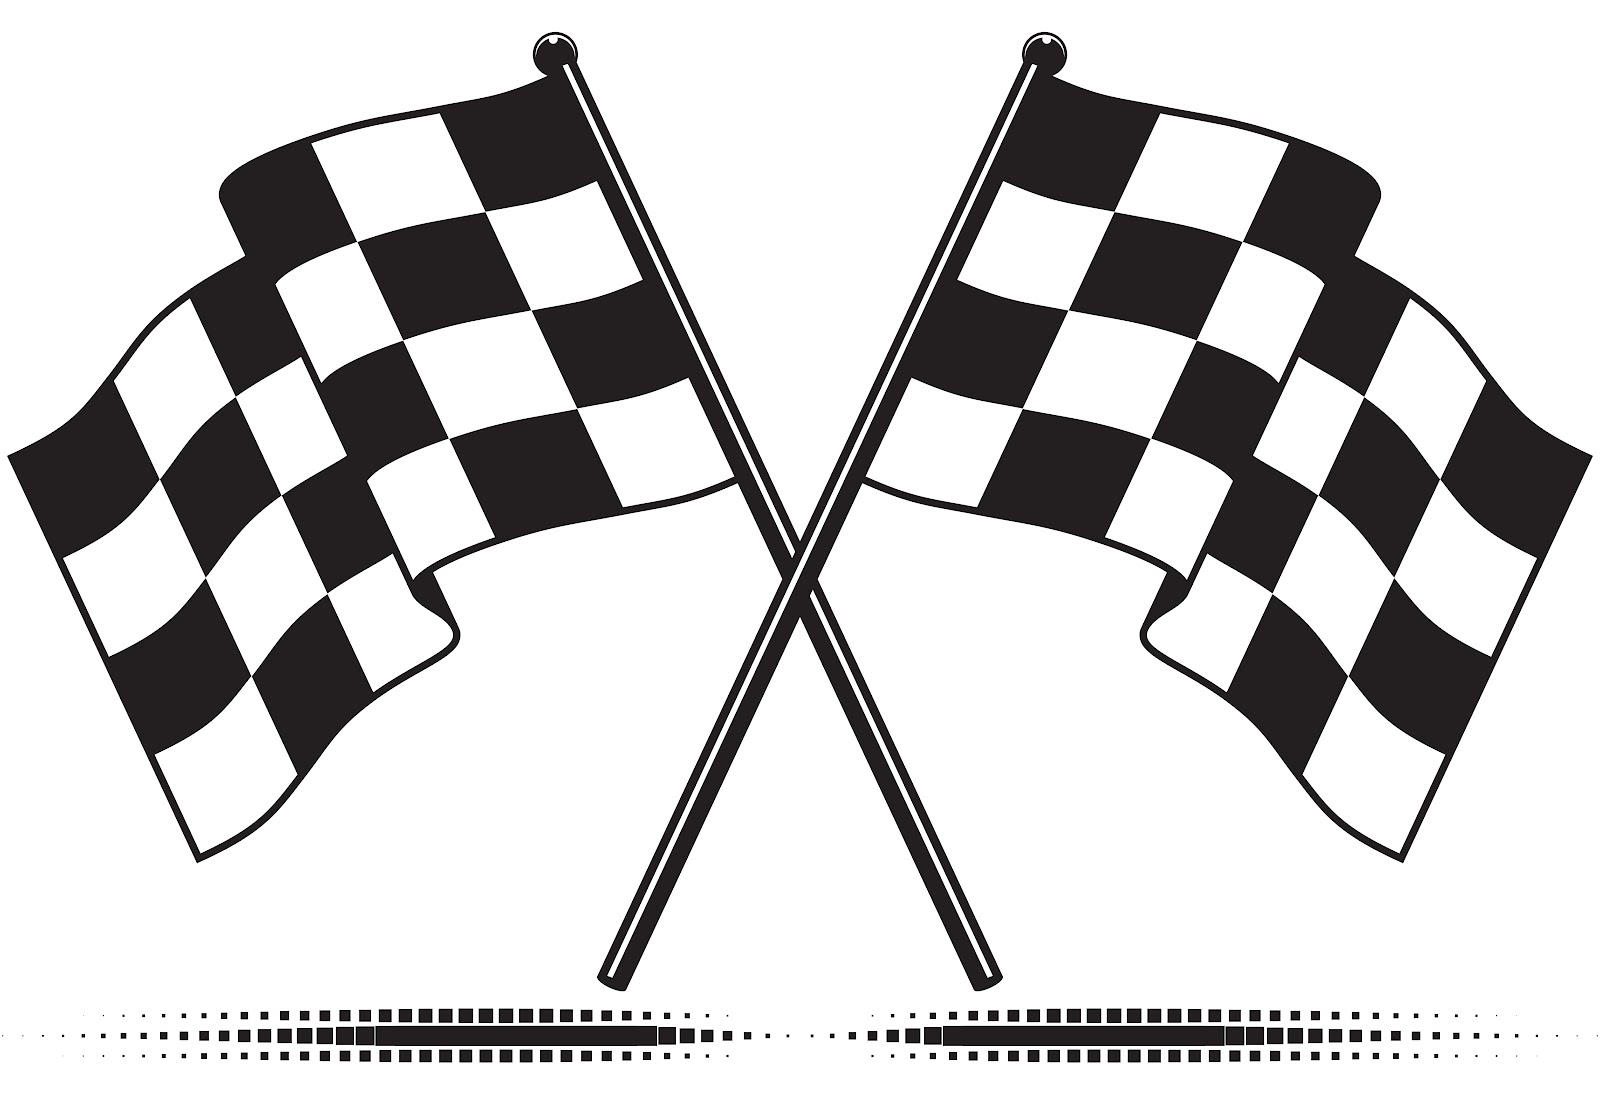 Checkered flag clipart free graphic royalty free stock 90+ Checkered Flag Clip Art | ClipartLook graphic royalty free stock